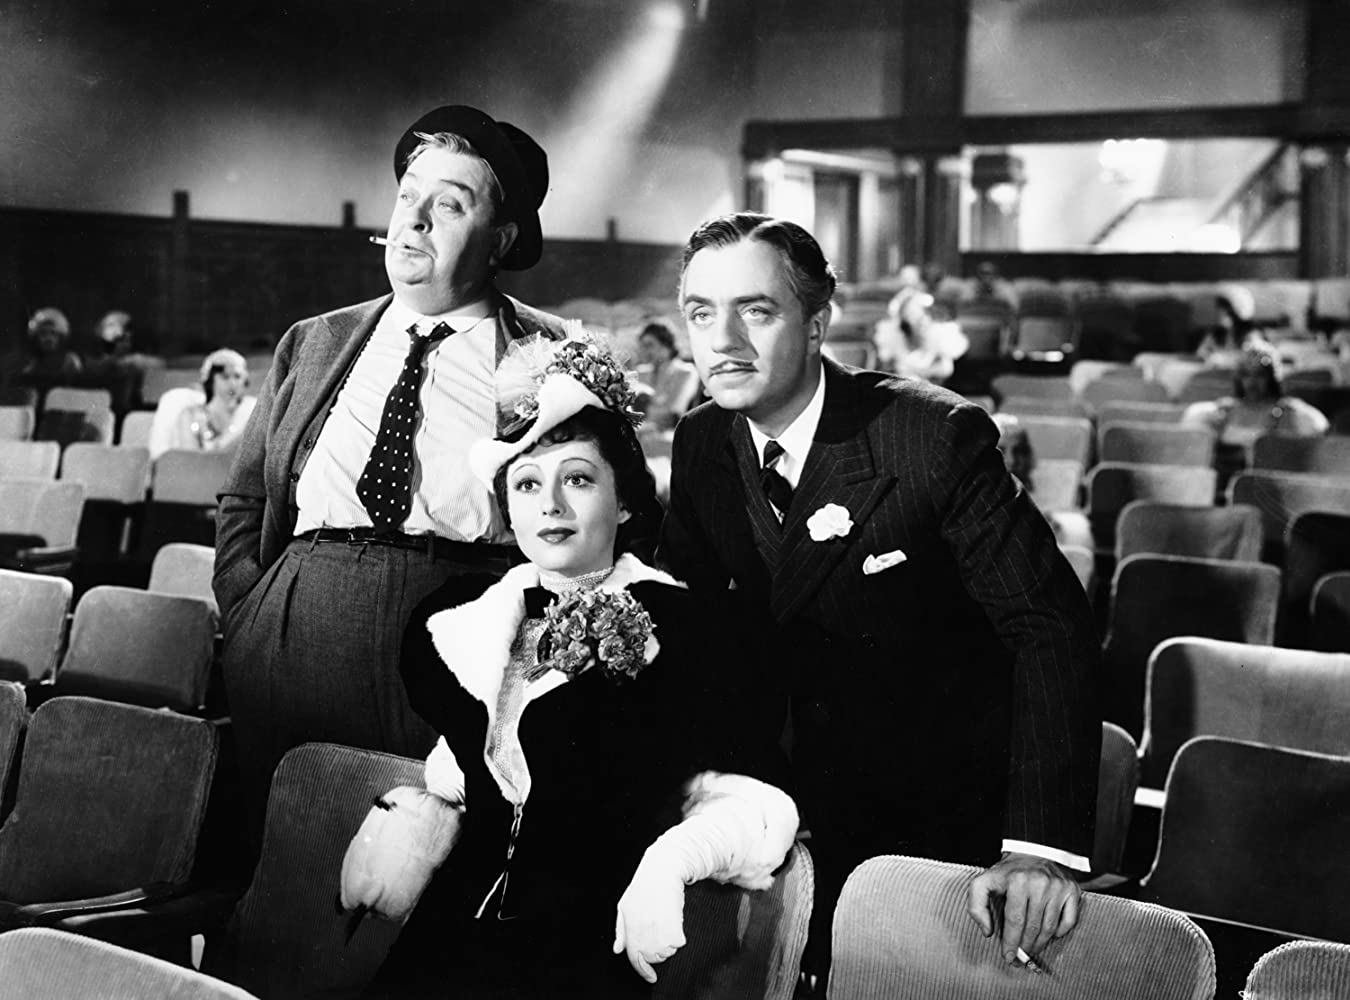 William Powell, Robert Greig, and Luise Rainer in The Great Ziegfeld (1936)